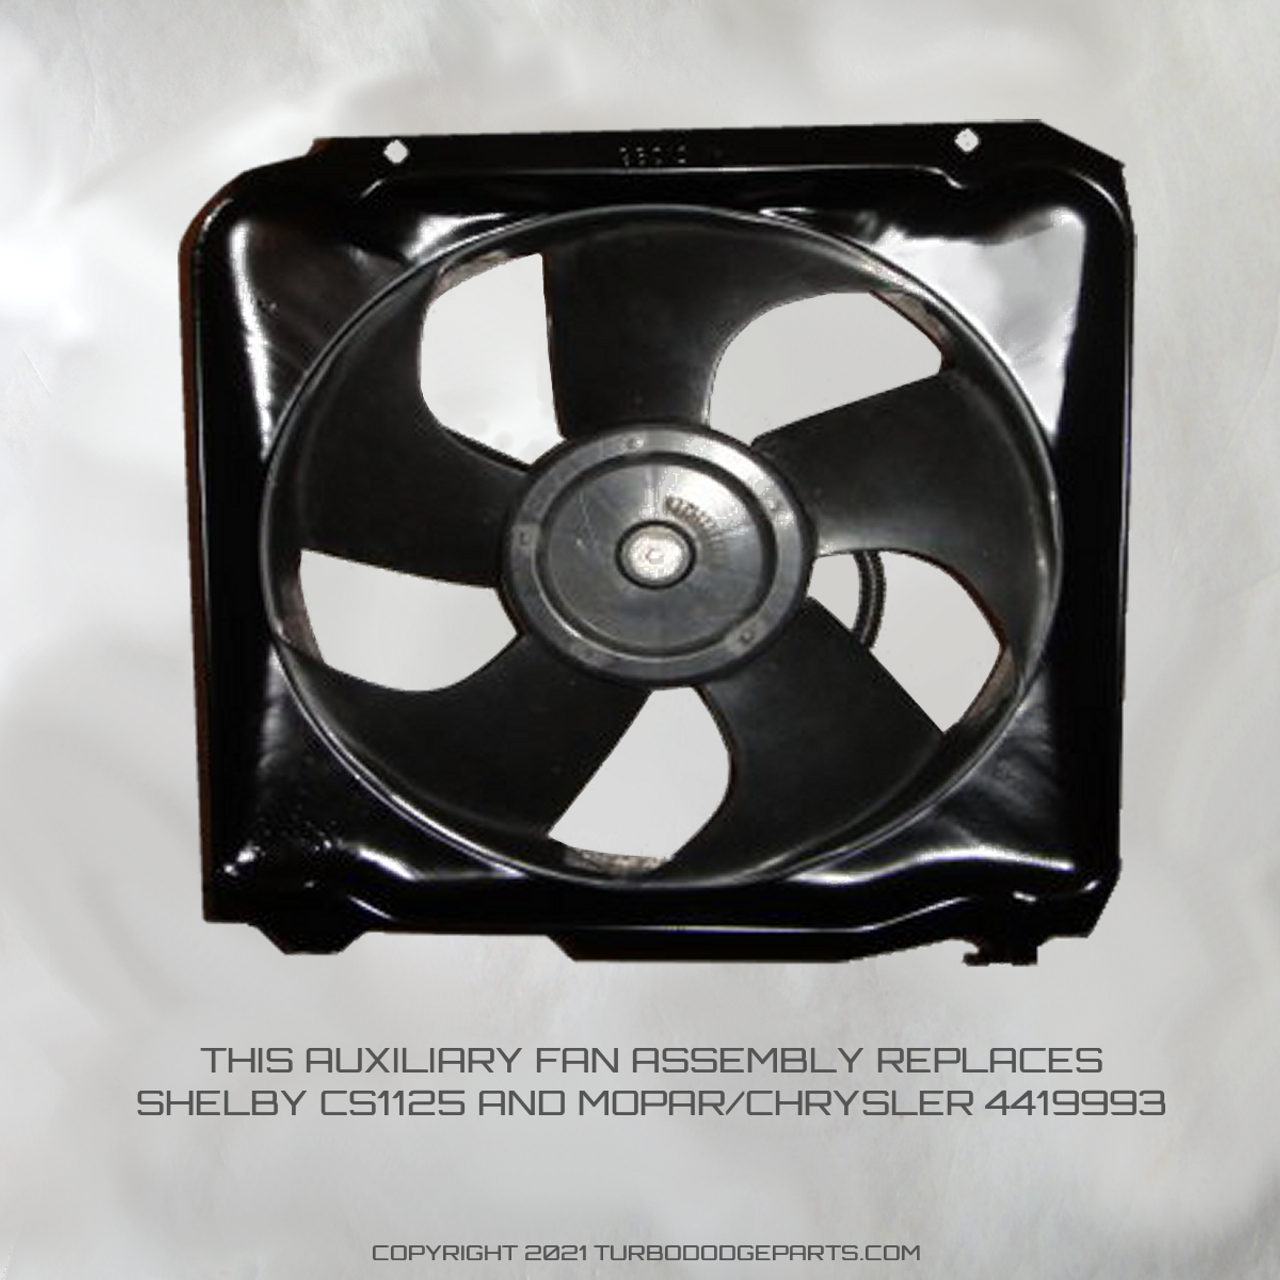 Shelby CS1125, MOPAR/CHRYSLER 4419993, Replacement auxiliary/radiator electric fan motors for the 1986 and 1987 Shelby GLHS cars.